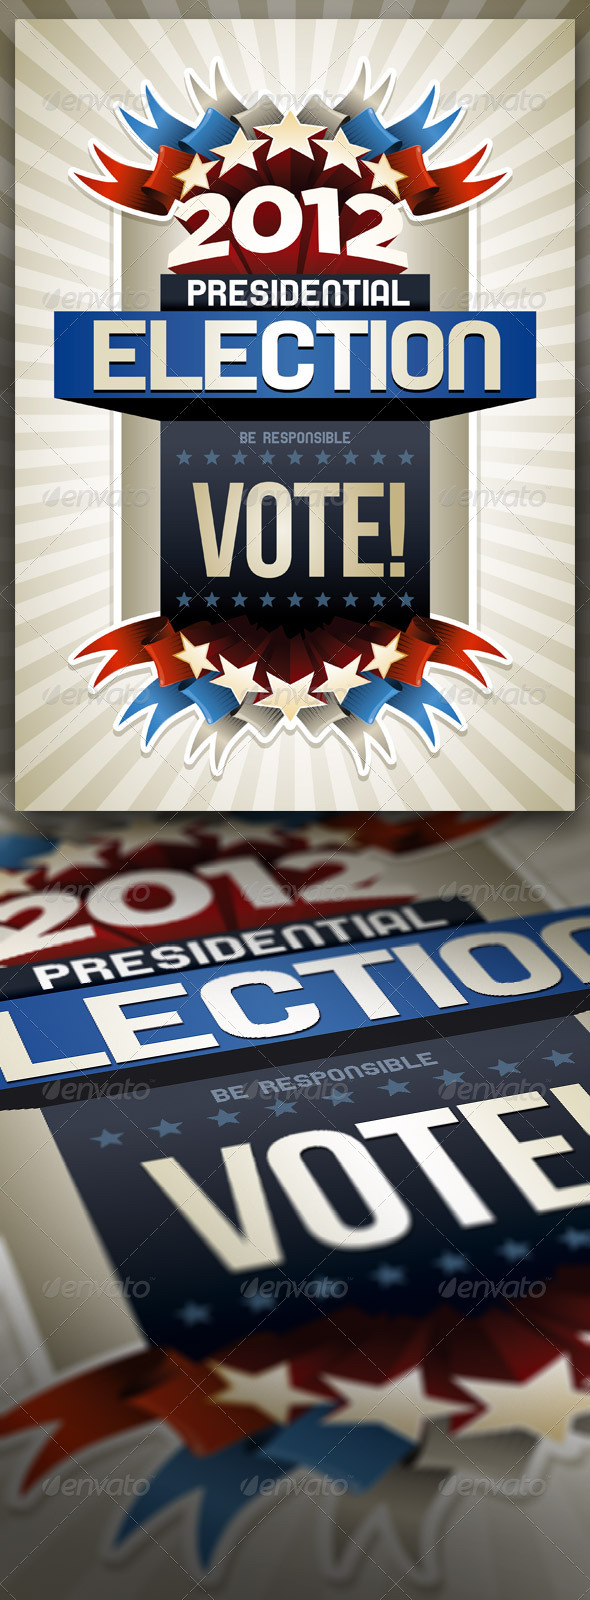 GraphicRiver 2012 American Presidential Election Poster 1580390